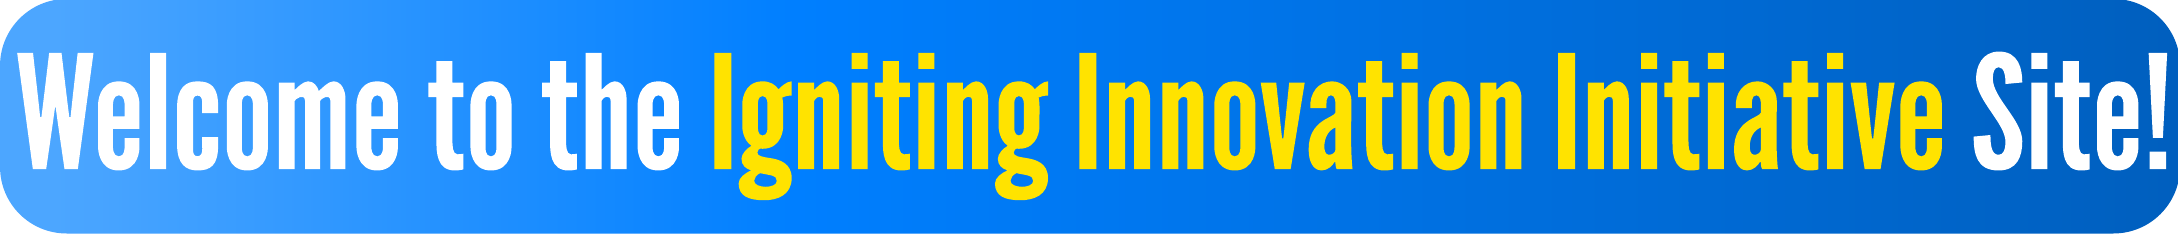 Welcome to the Igniting Innovation Initiative Site!